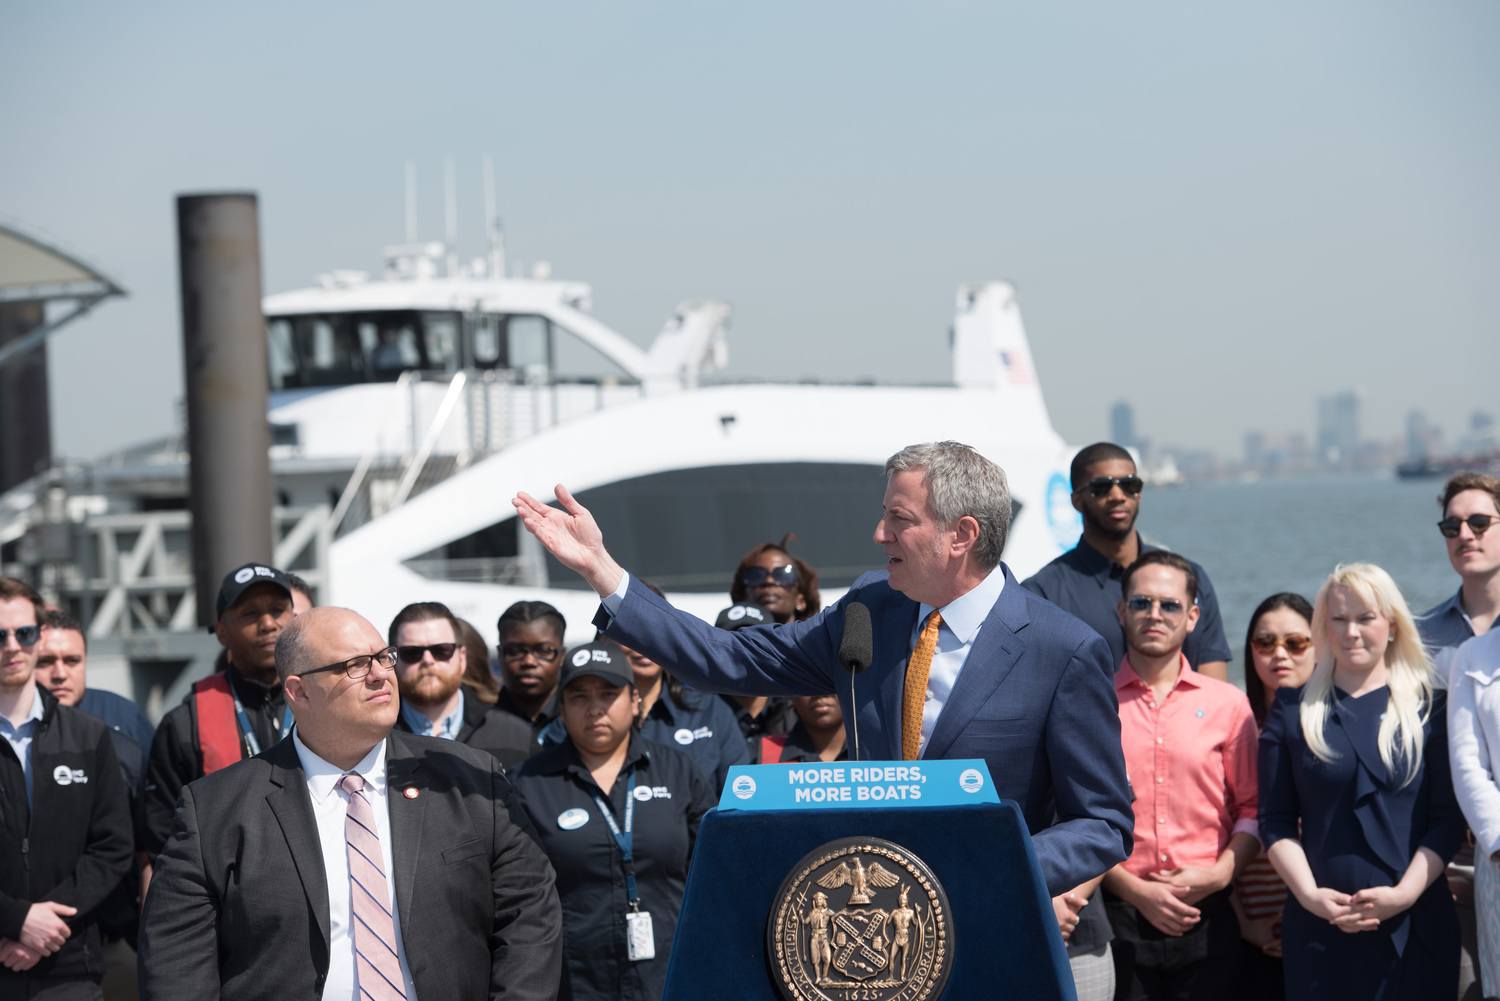 NYC Ferry announcement | Mayor Bill de Blasio announces an increase in service and vessels for NYC Ferry to meet the demand of a projected 9 million annual riders during a press conference at the Bay Ridge terminal in Brooklyn on Thursday, May 3, 2018. Michael Appleton/Mayoral Photography Office.